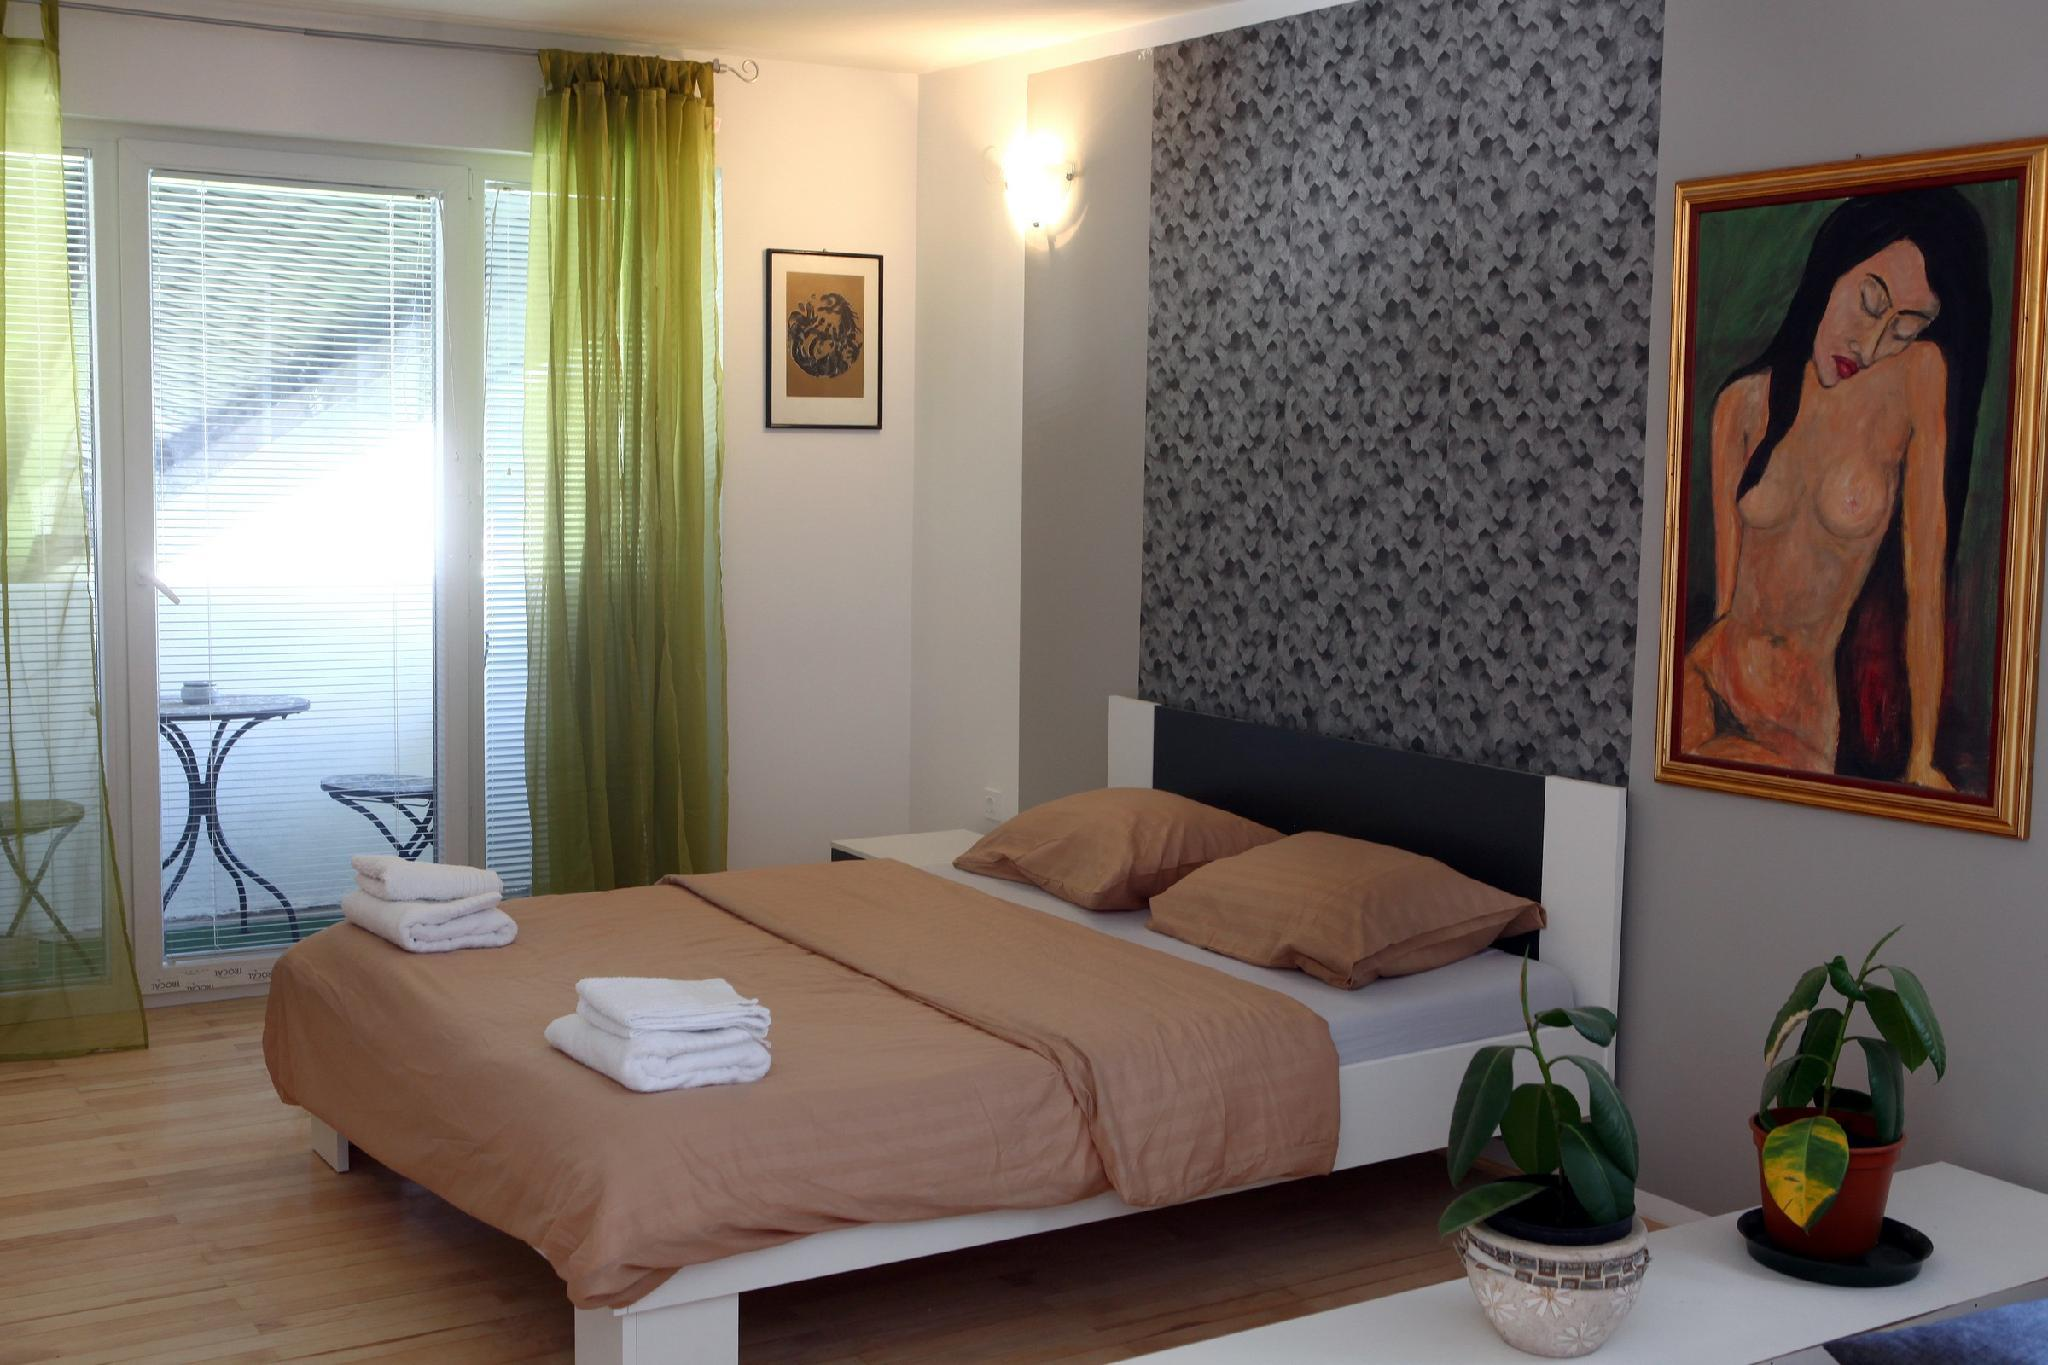 Guesthouse Apartment With Balcony OKI6